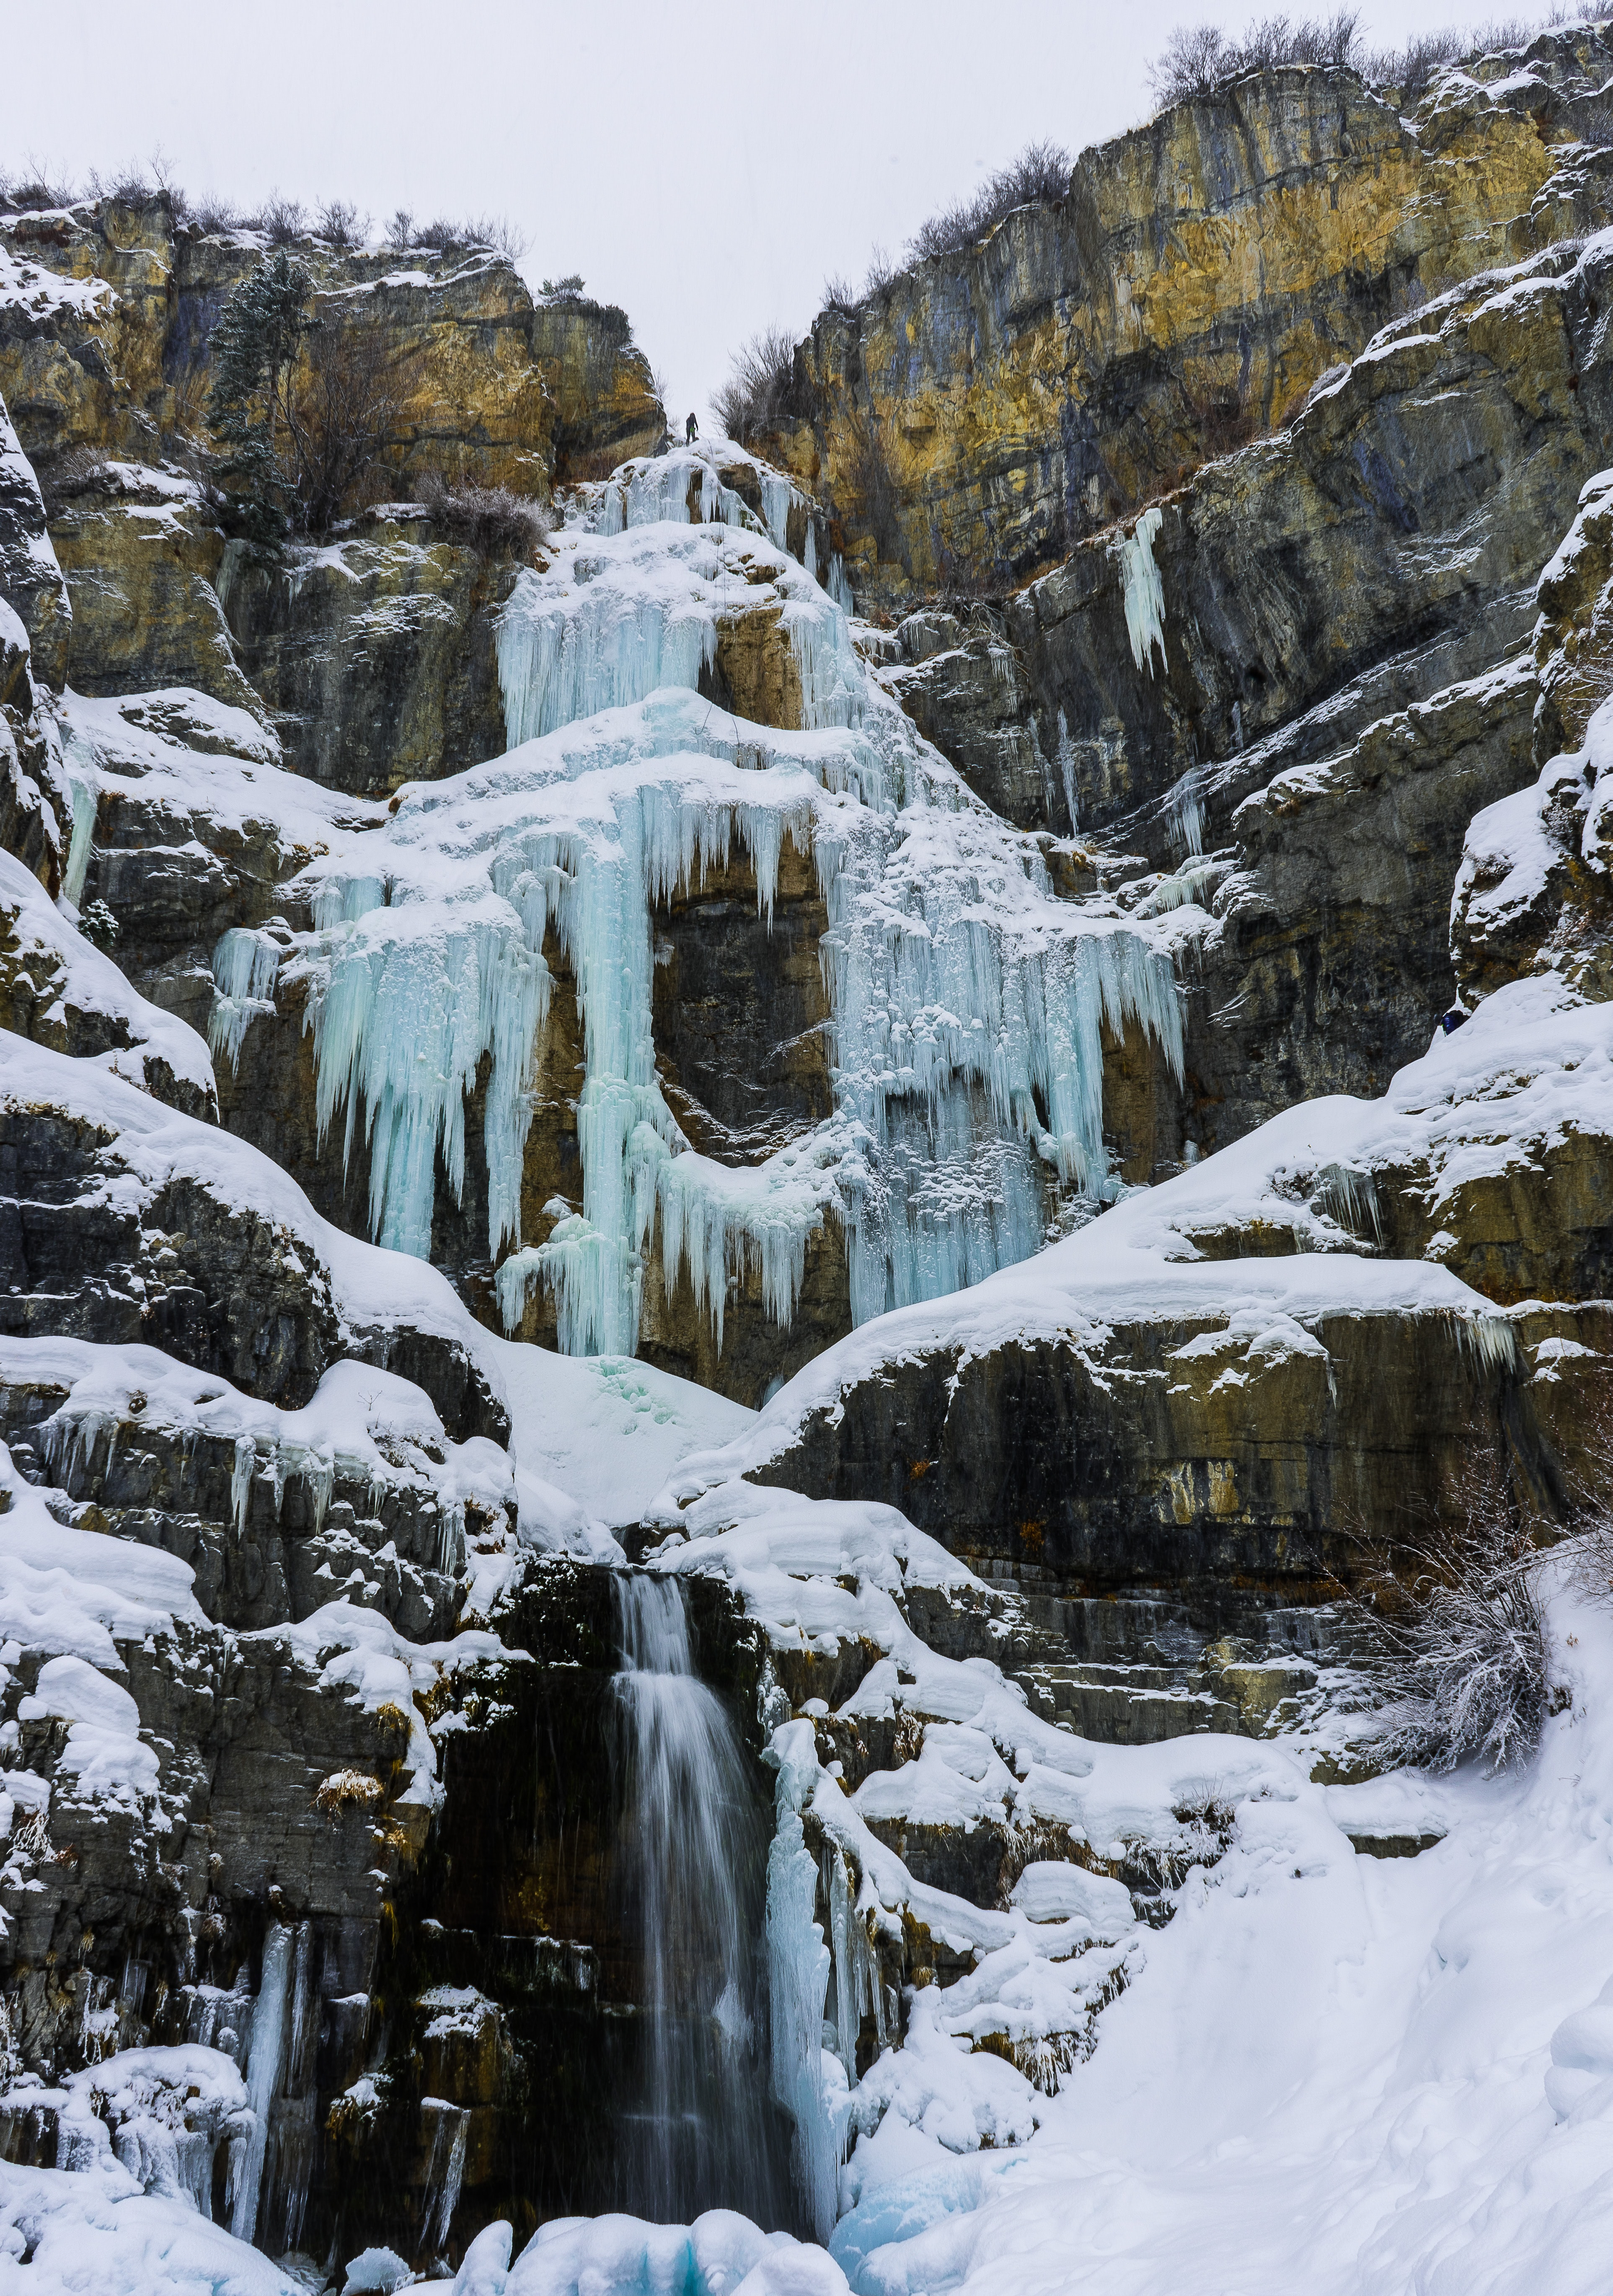 Frozen icy waterfall cascades down rocky cliff